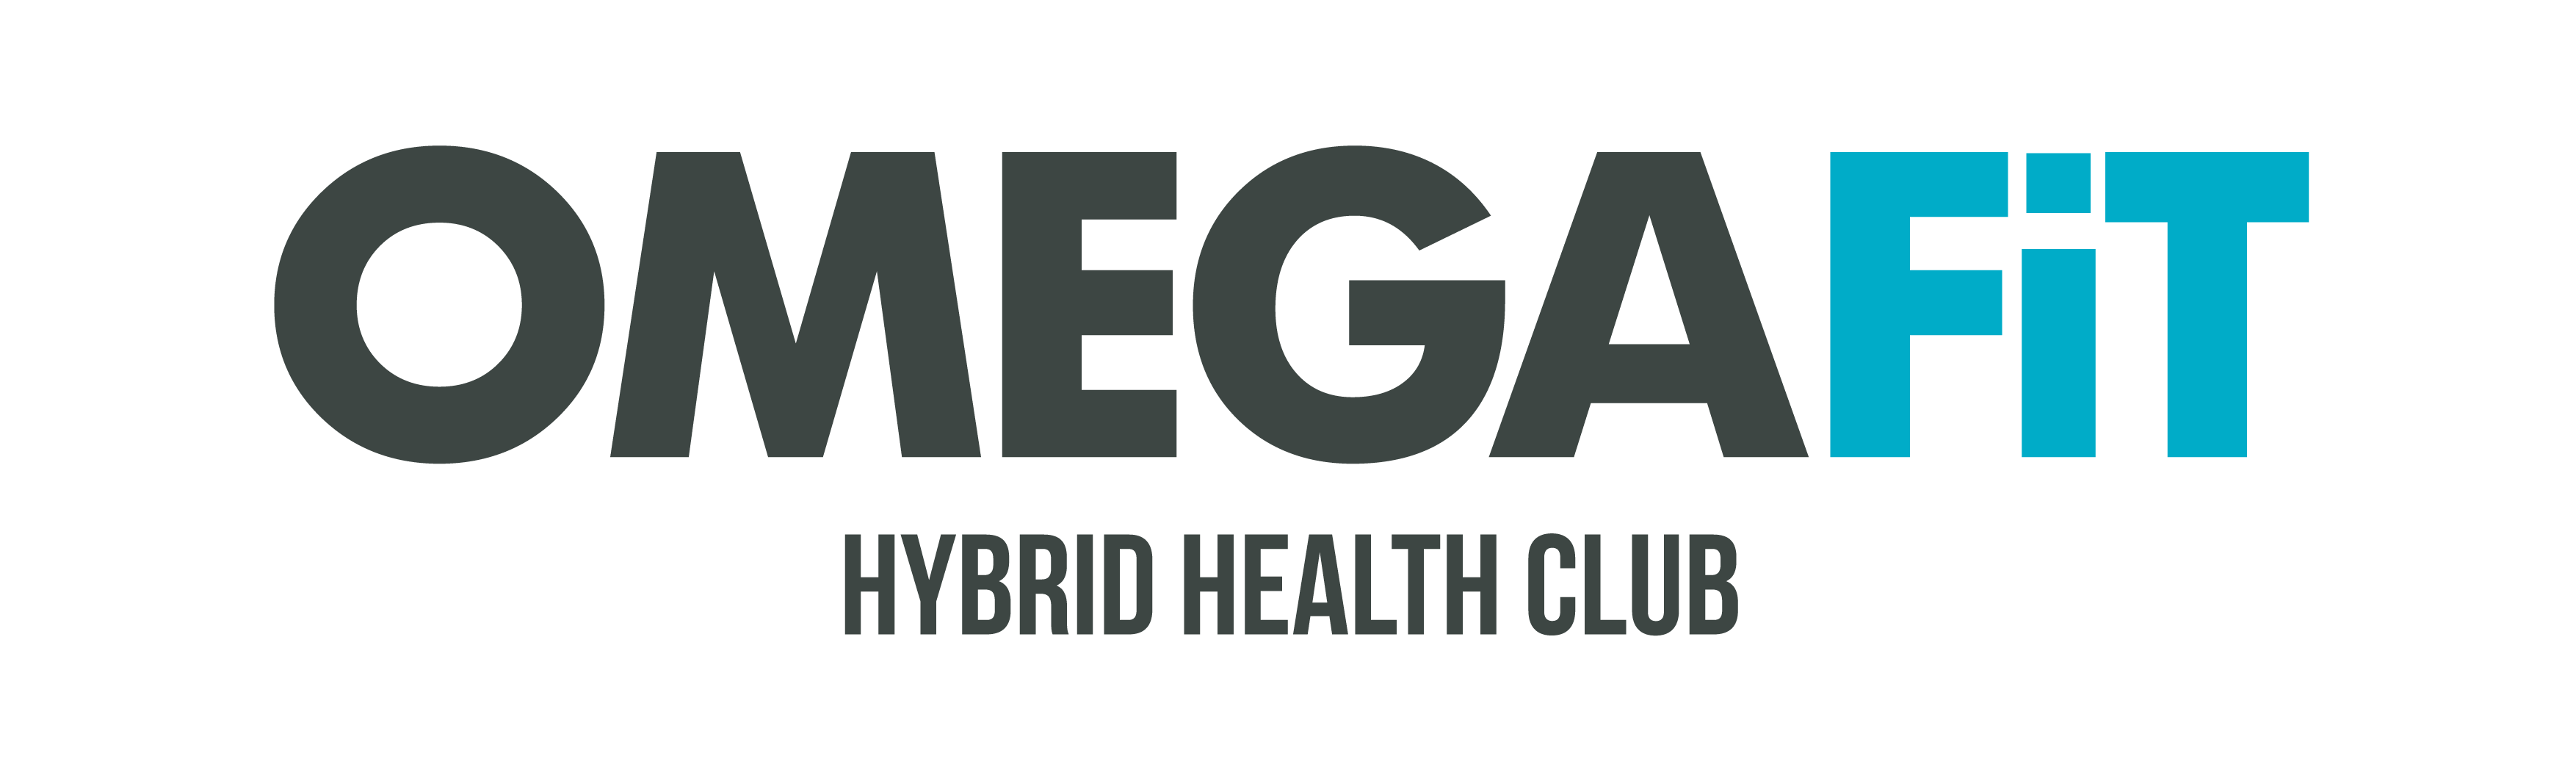 OMEGAFIT Hybrid Health Club